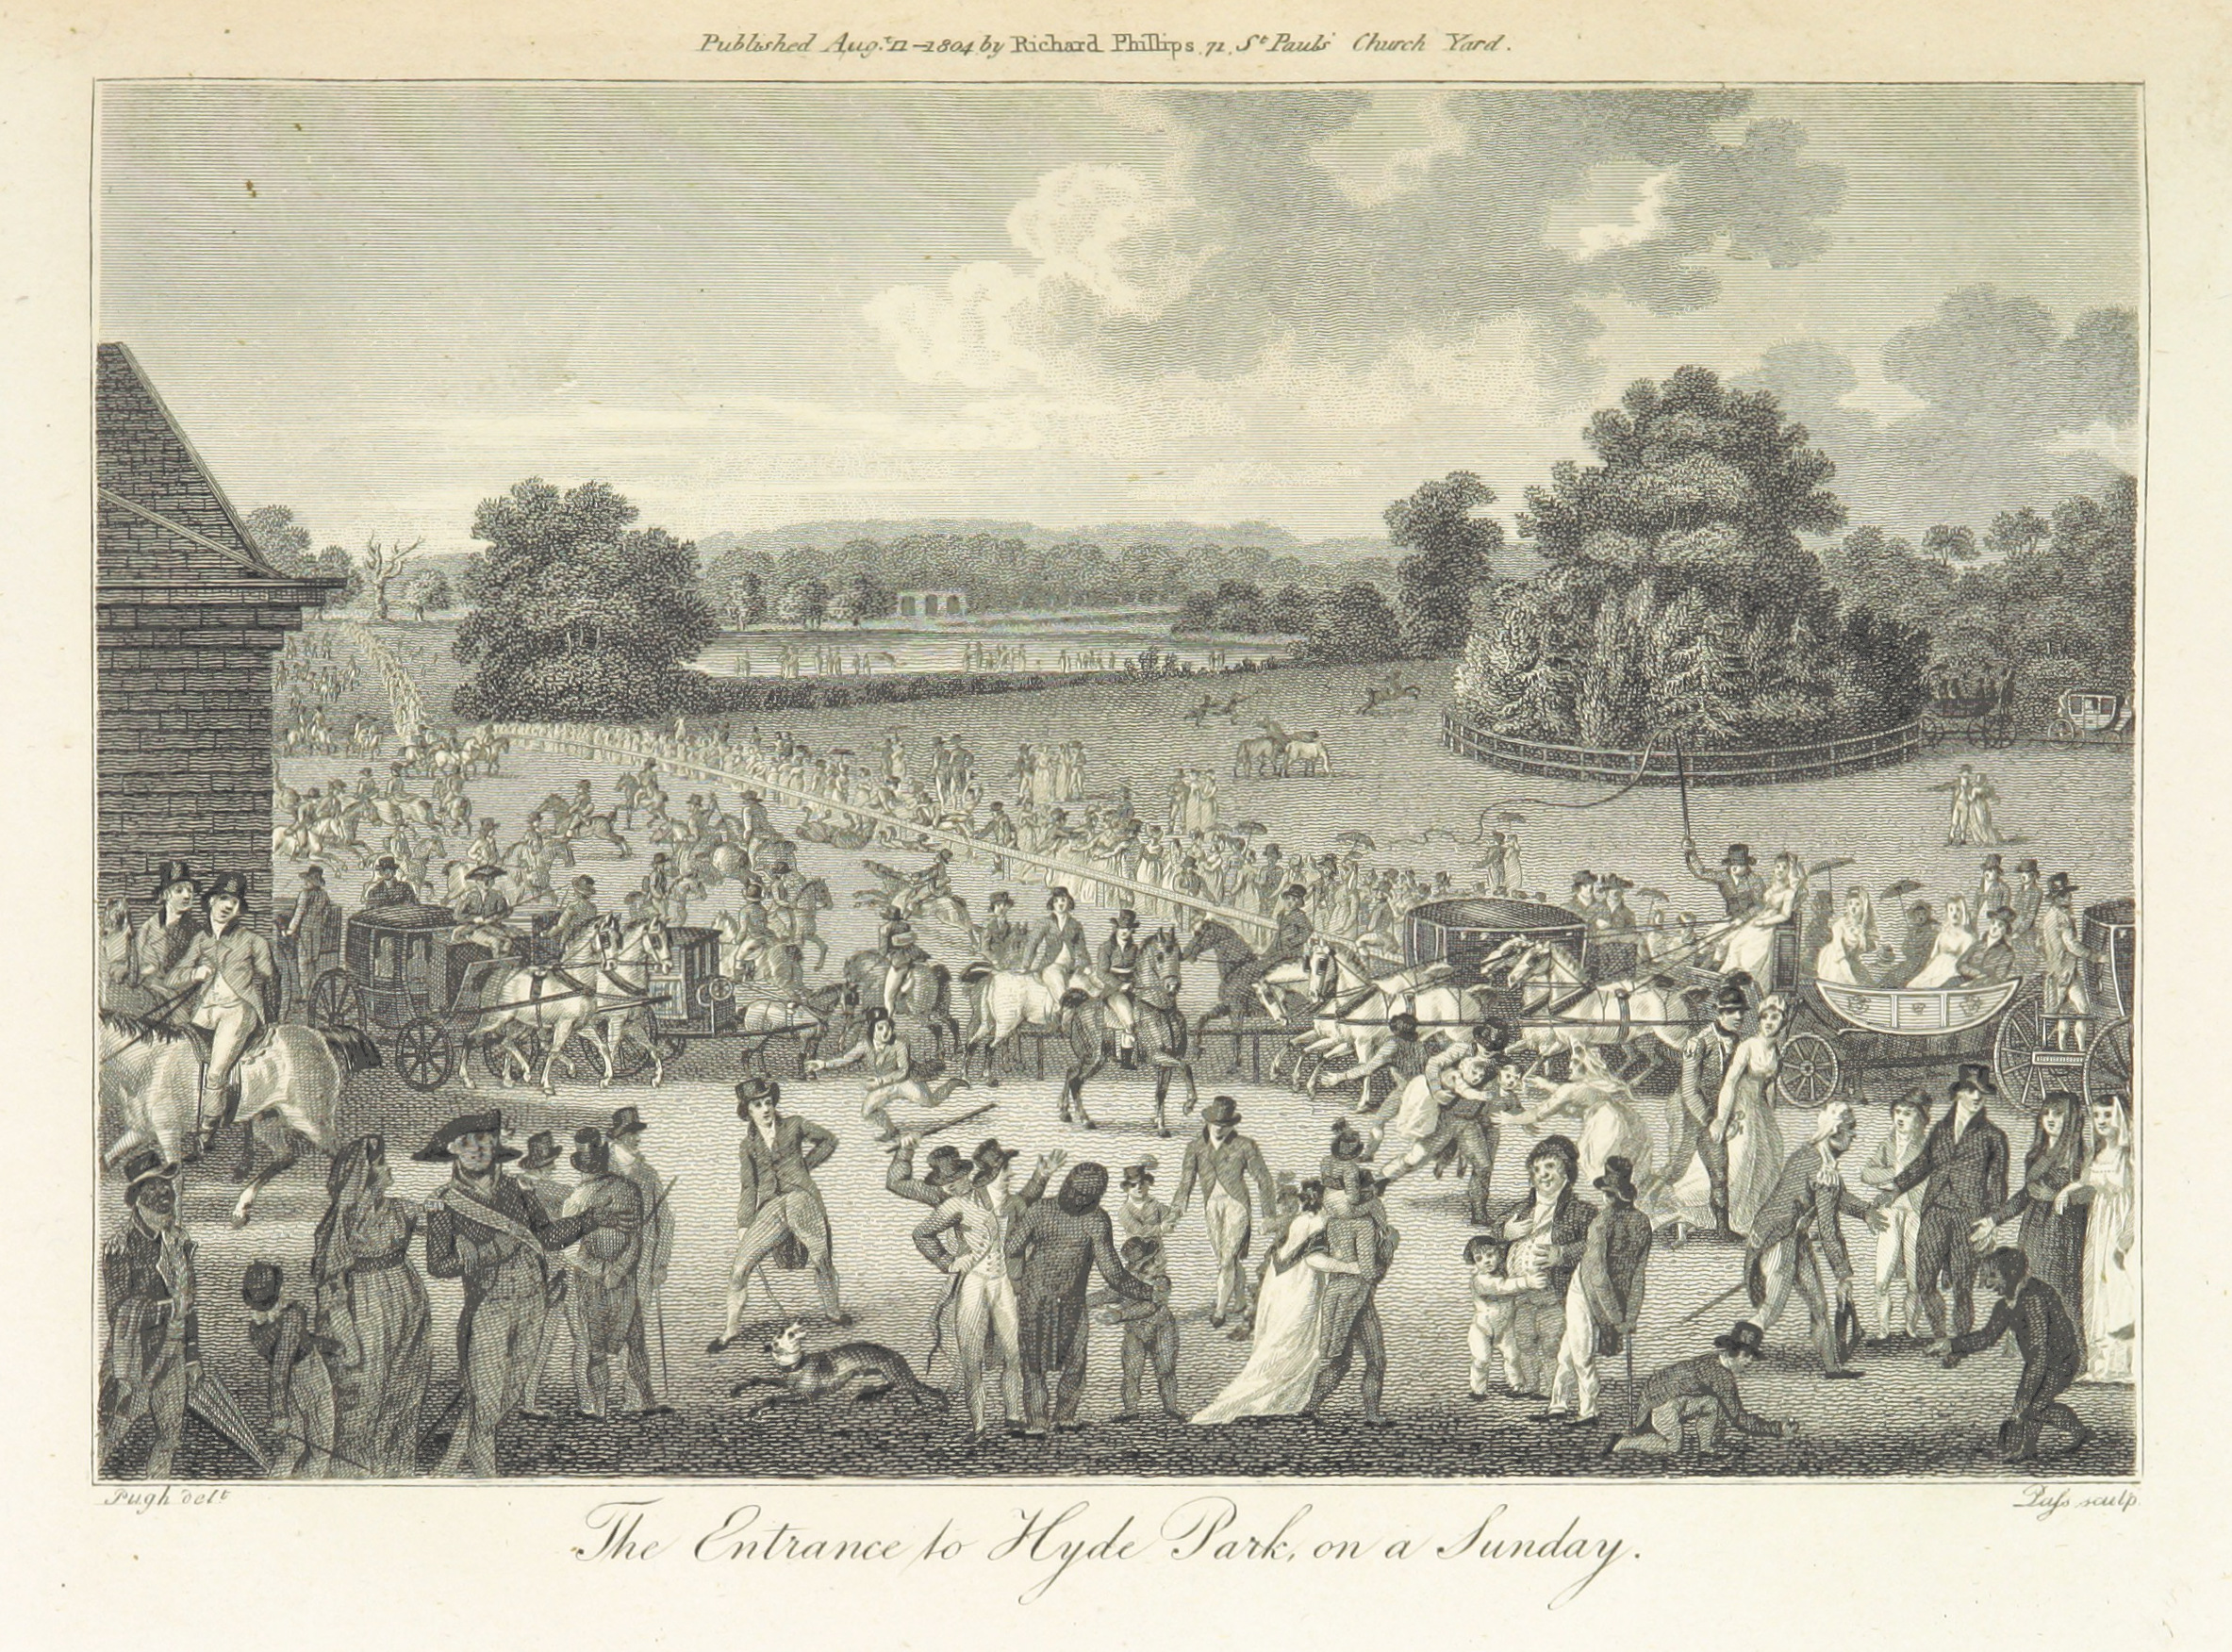 Phillips(1804)_p277_-_The_Entrance_to_Hyde_Park_on_Sunday